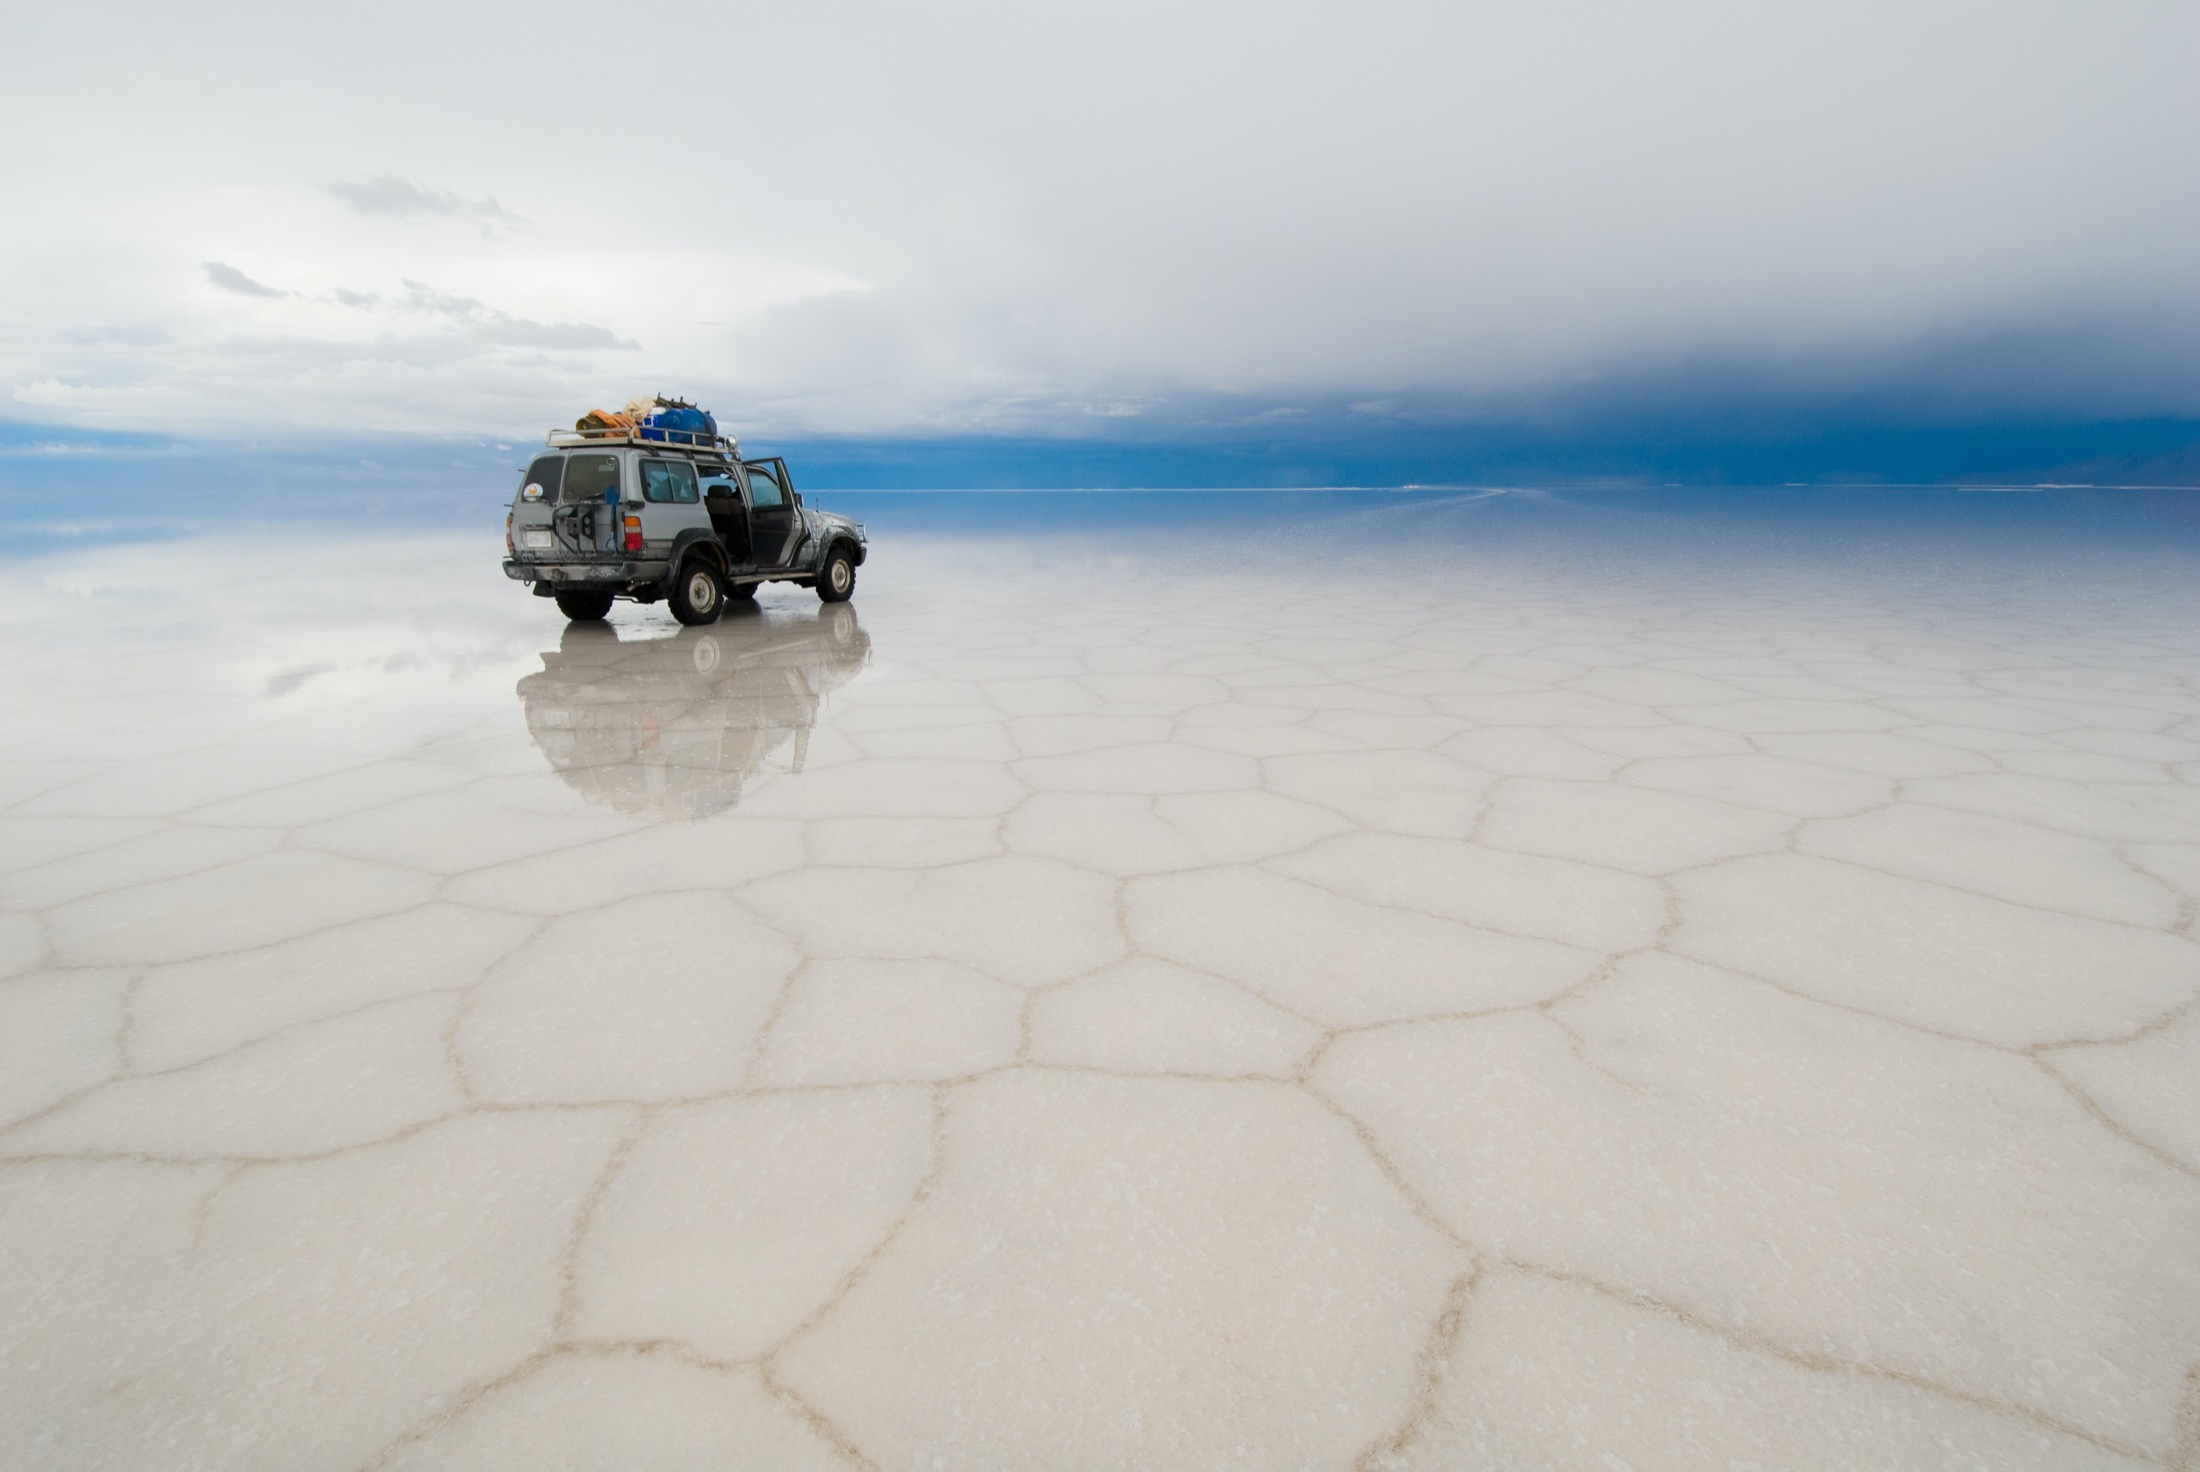 Jeep in the salt lake of Salar de Uyuni, Bolivia